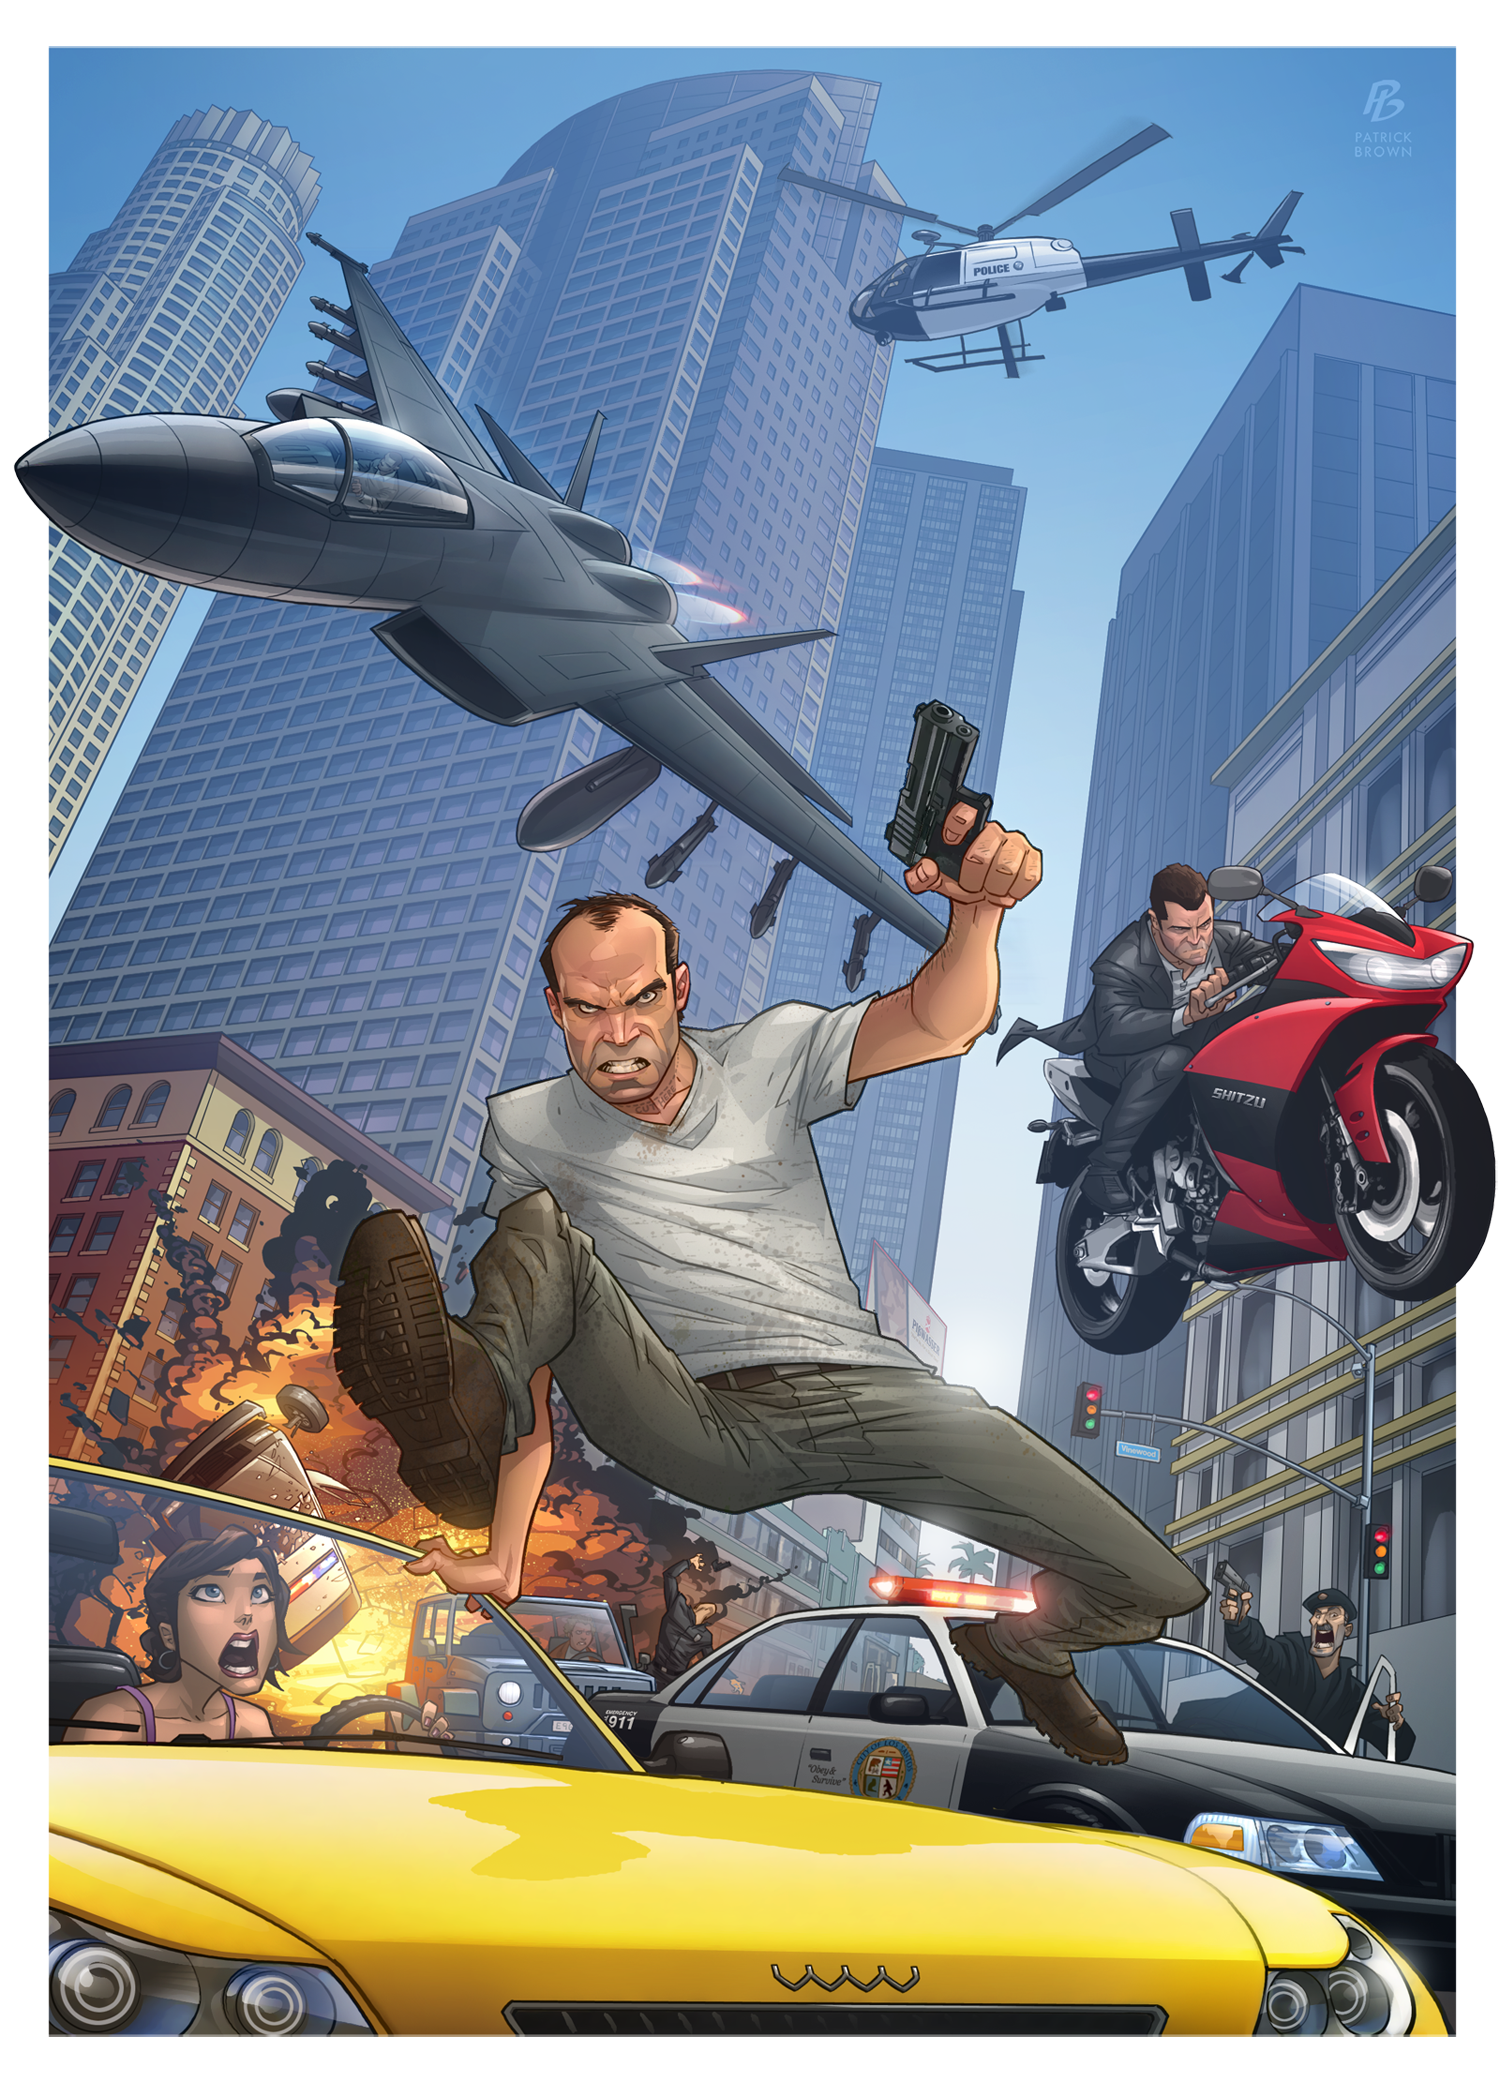 Patrick Brown first GTA 5 artwork